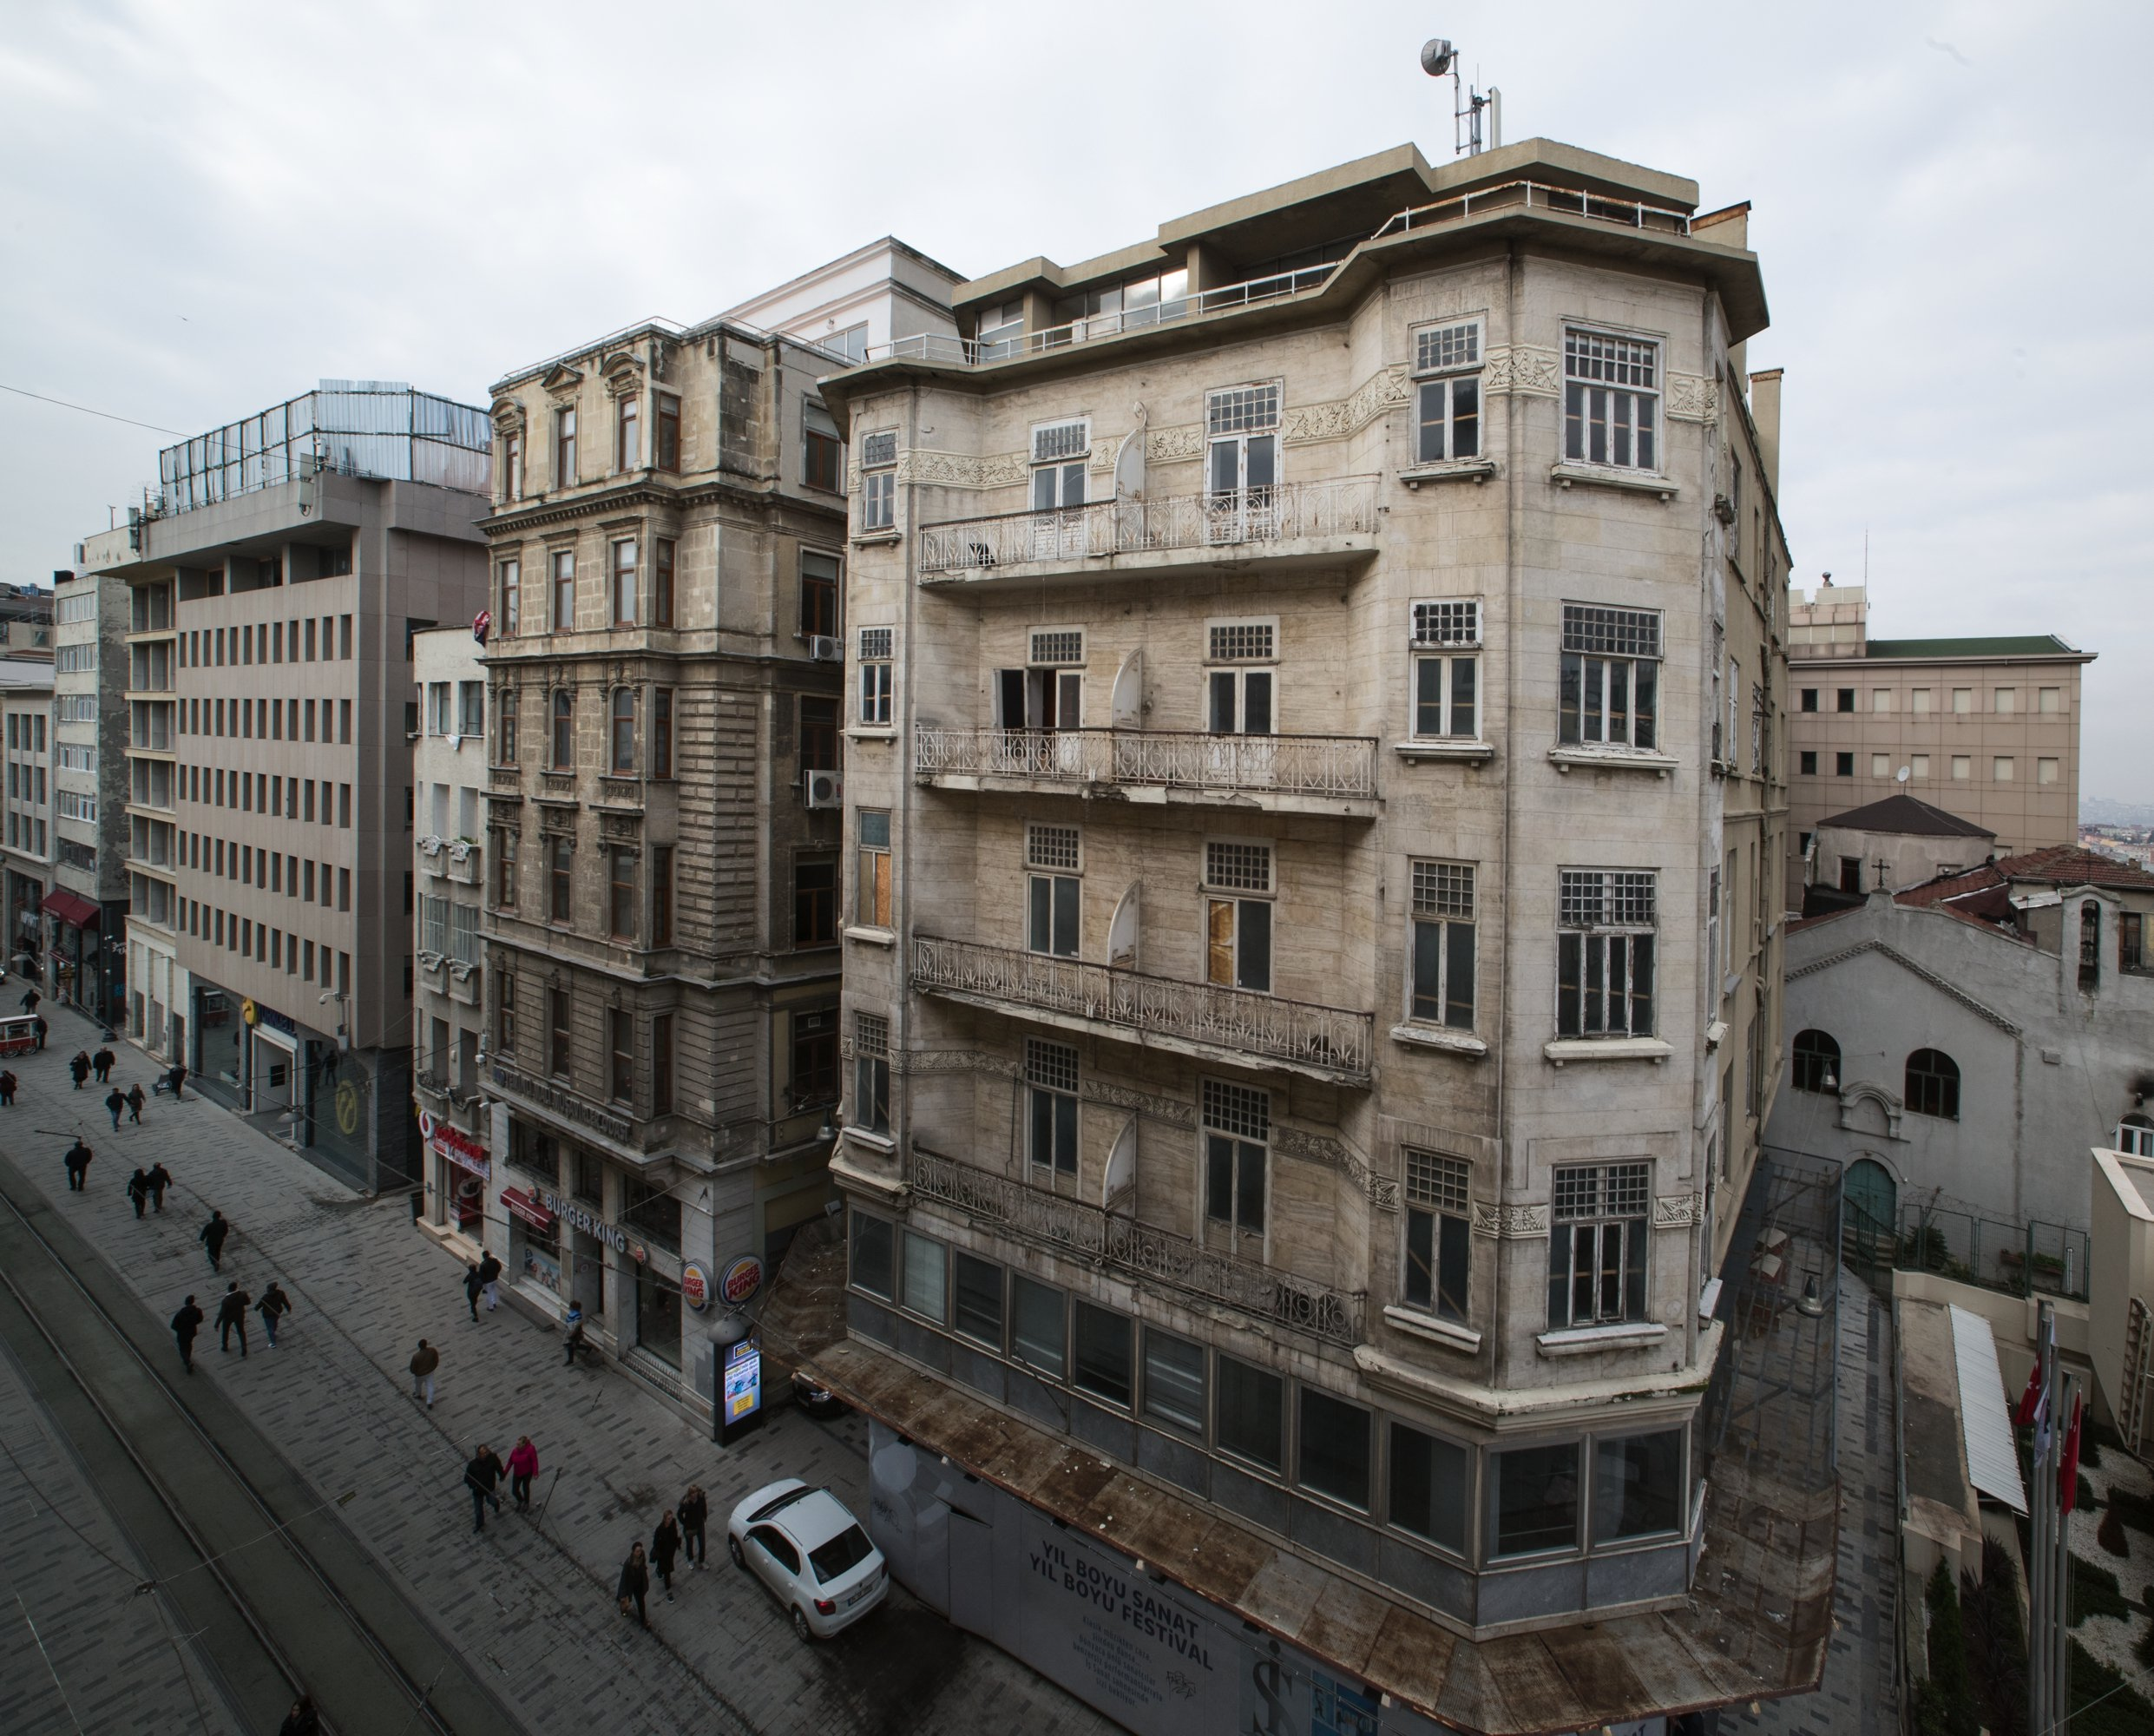 The historical building is located on Istiklal Avenue in Istanbul's Beyoğlu district.